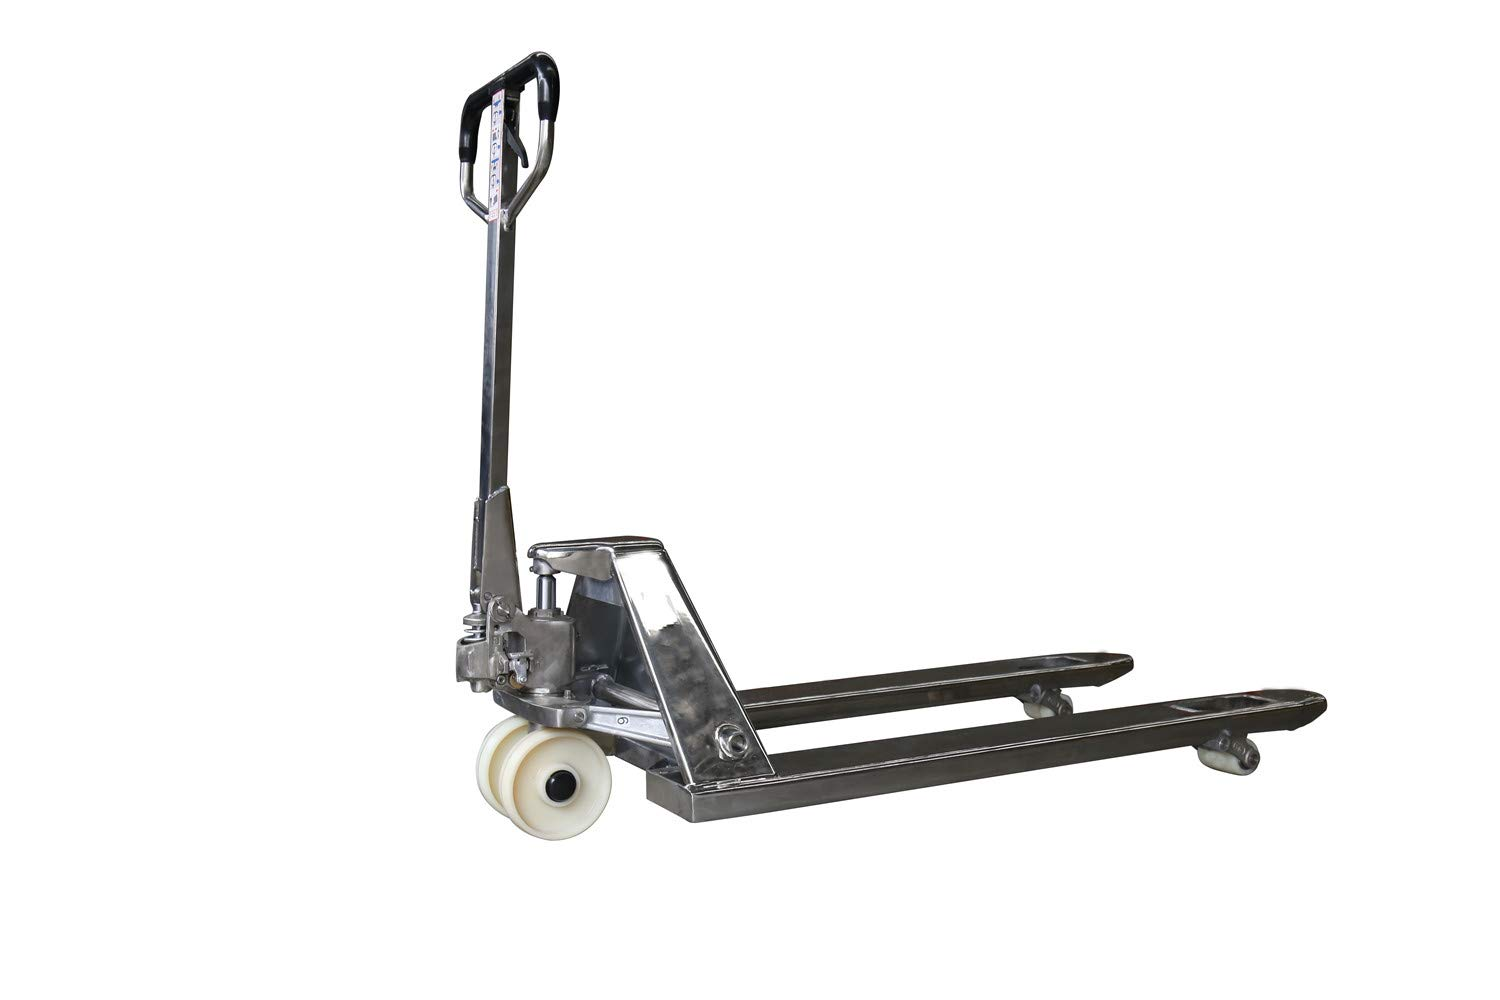 304 Stainless Steel Pallet safety Jacks OFFicial site Pall Capacity 2200lbs Load Hand